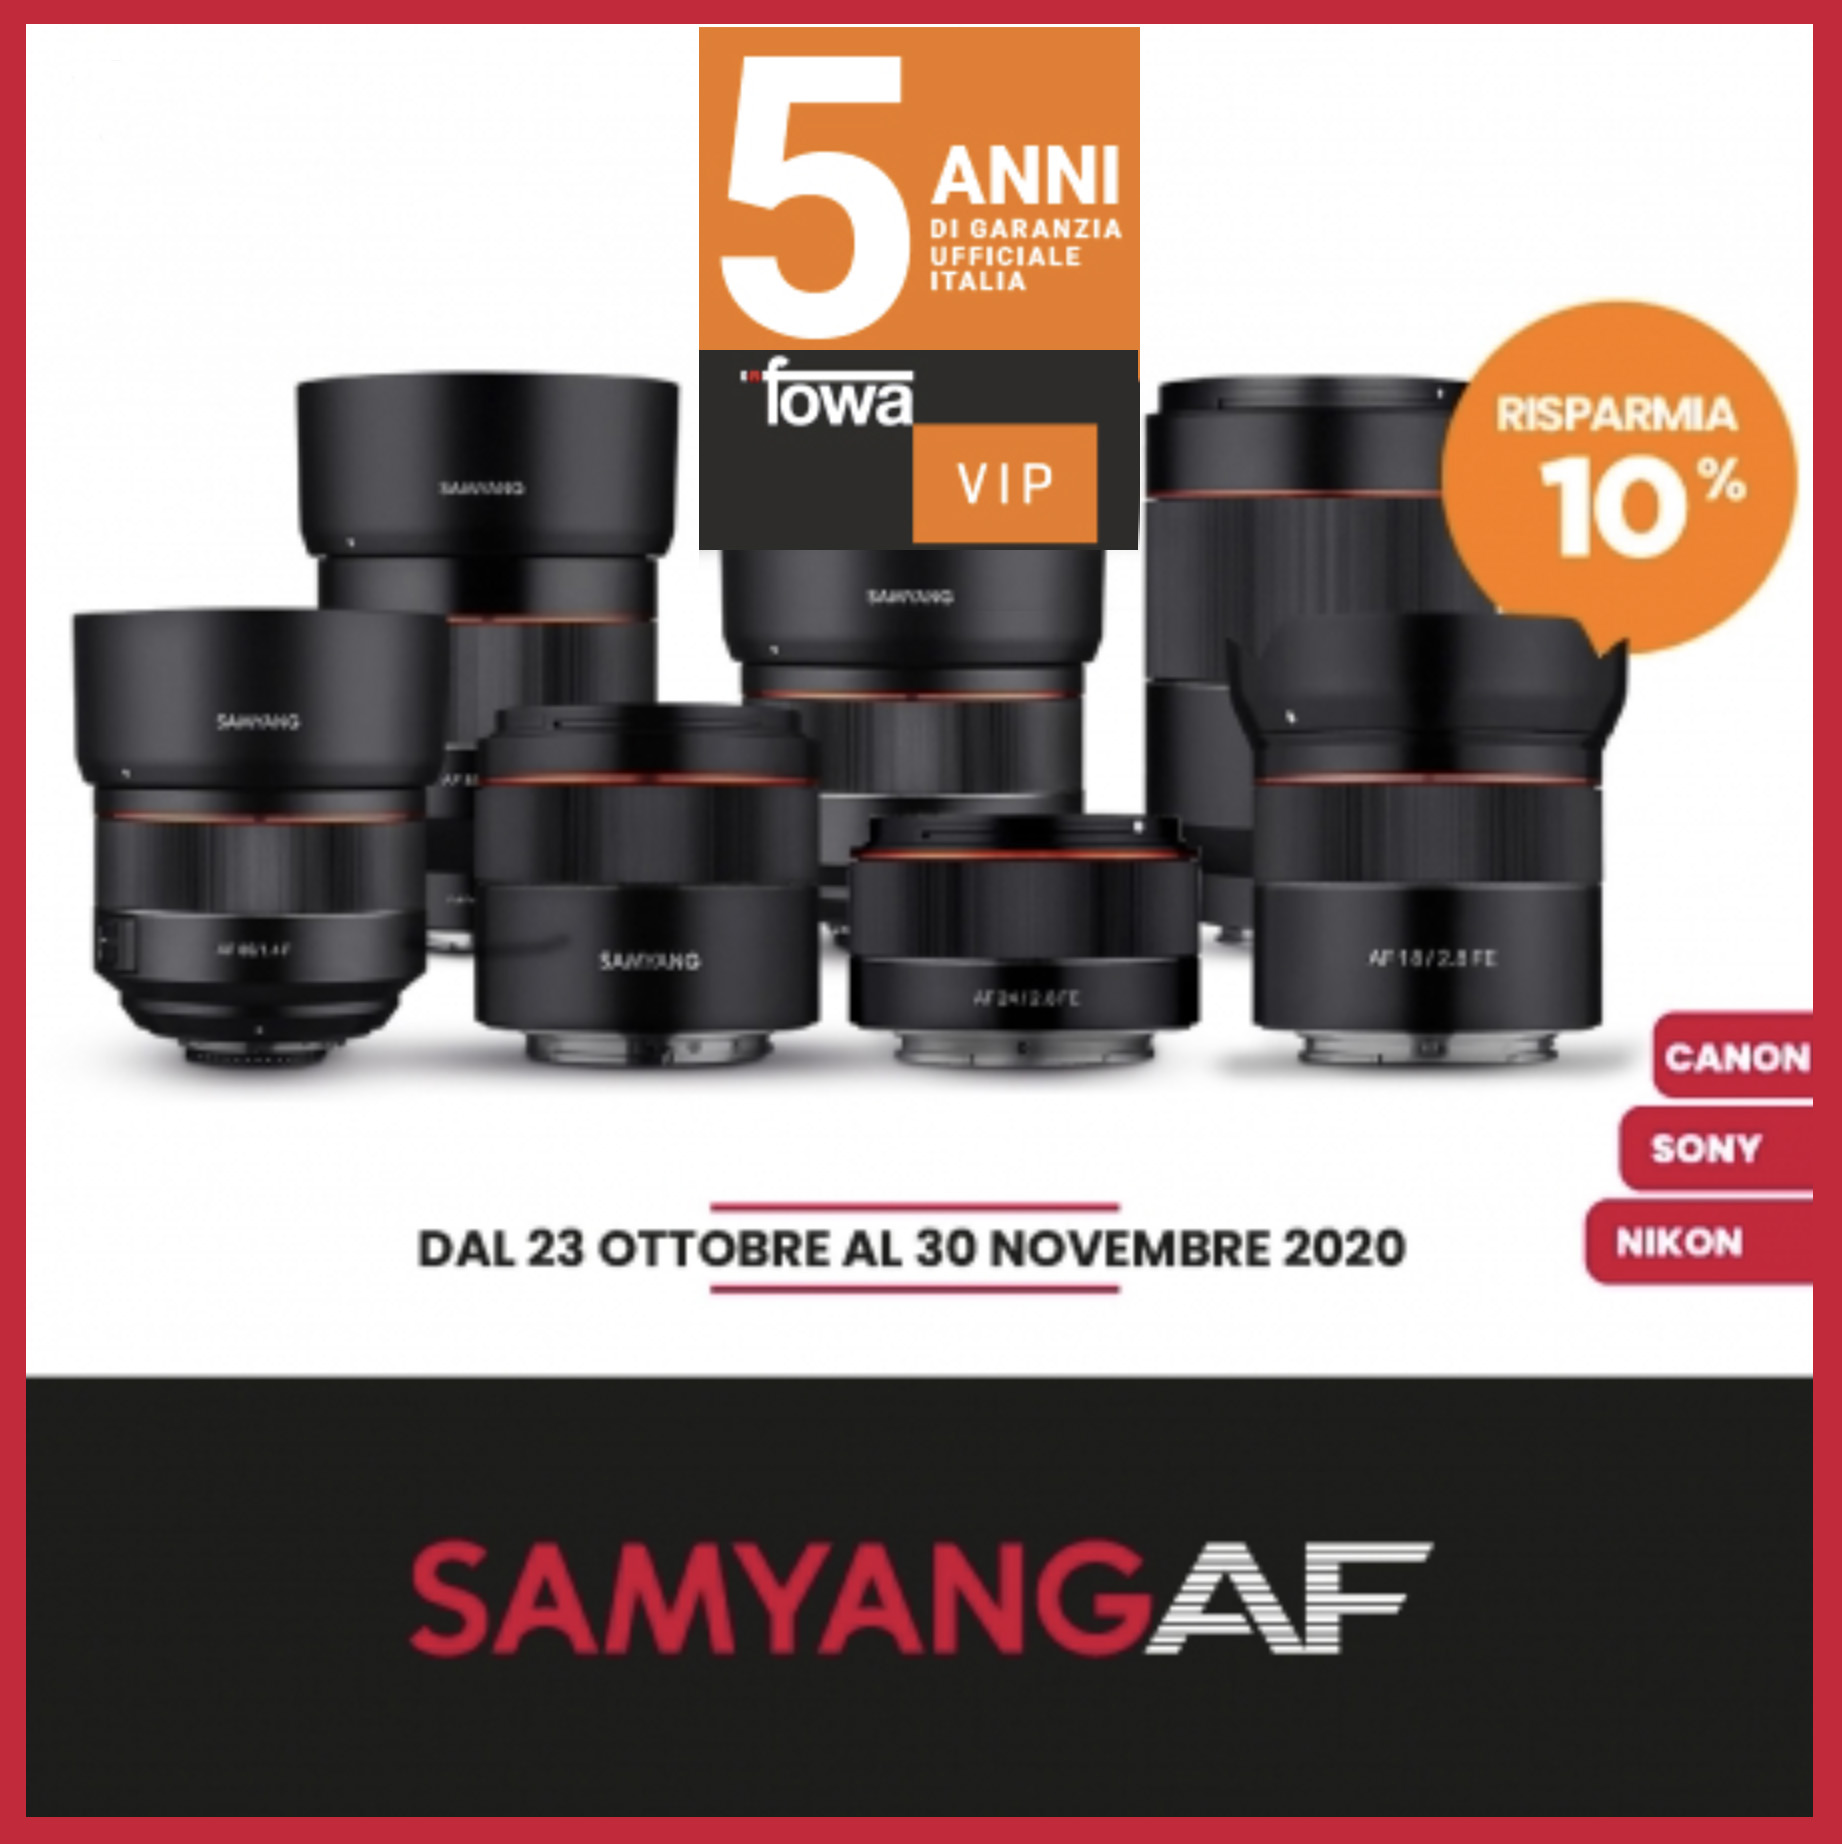 SAMYANG AF 10% DI SCONTO IMMEDIATO